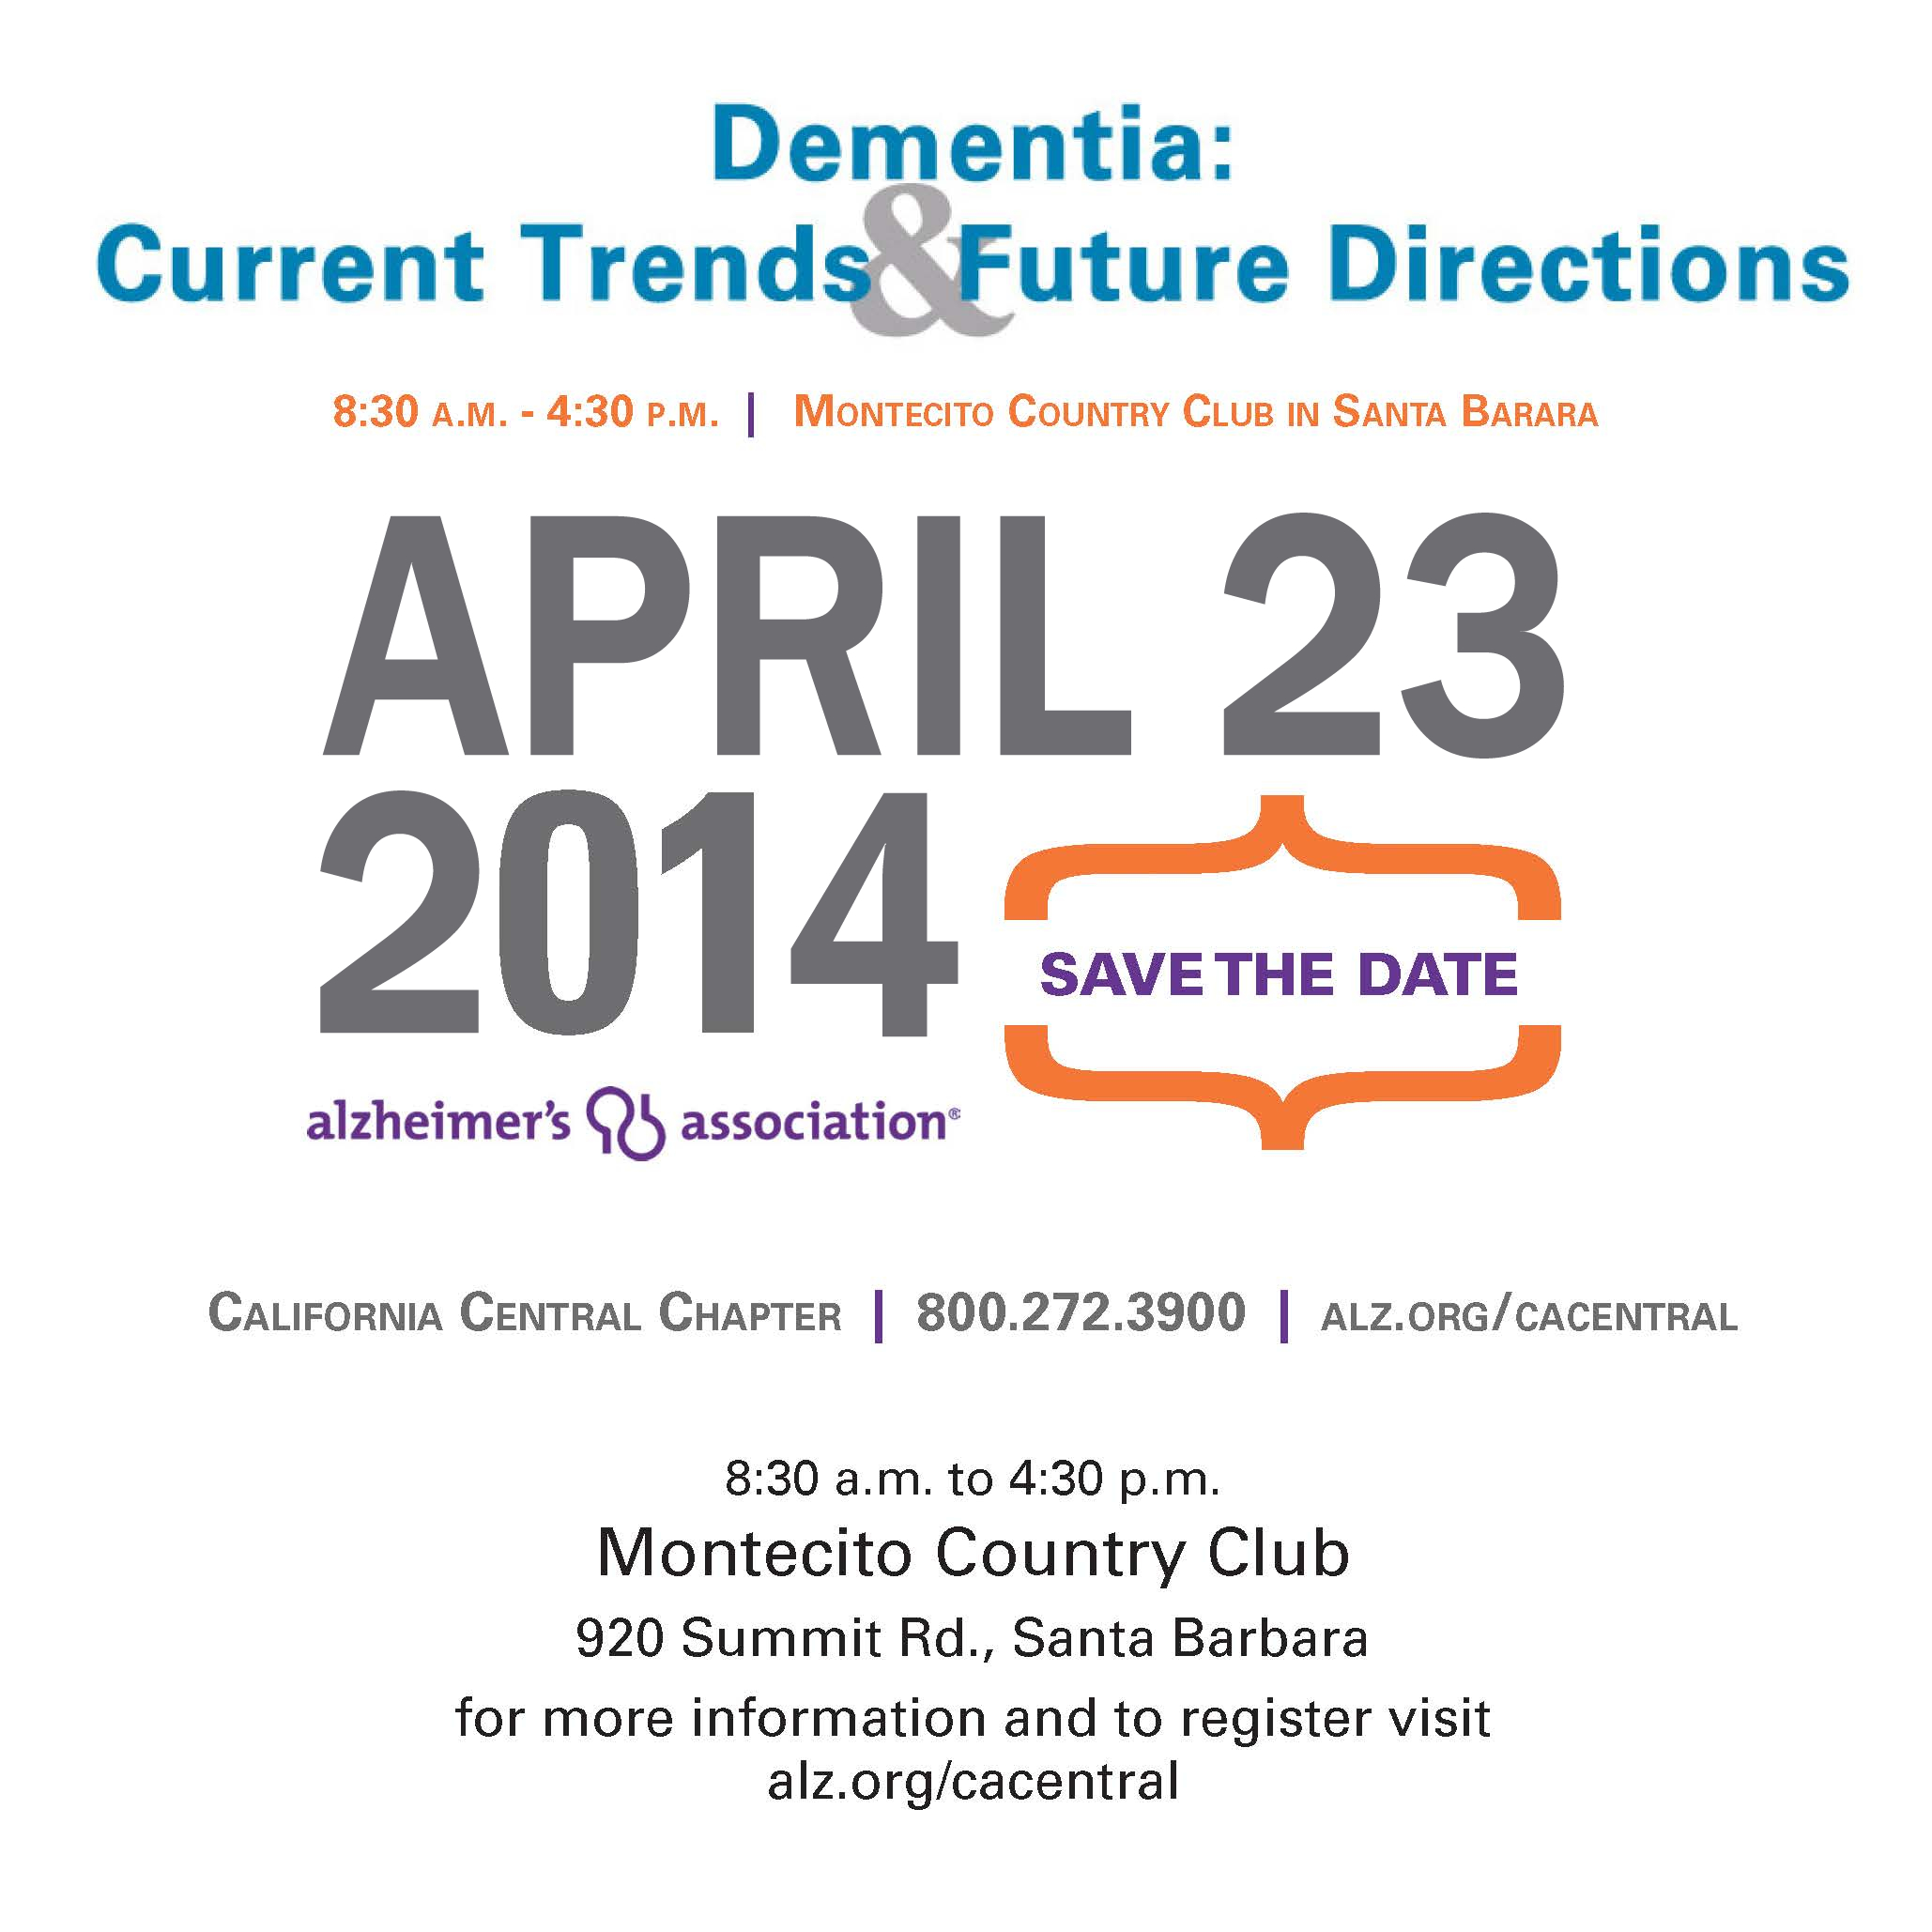 Dementia:  Current Trends & Future Directions